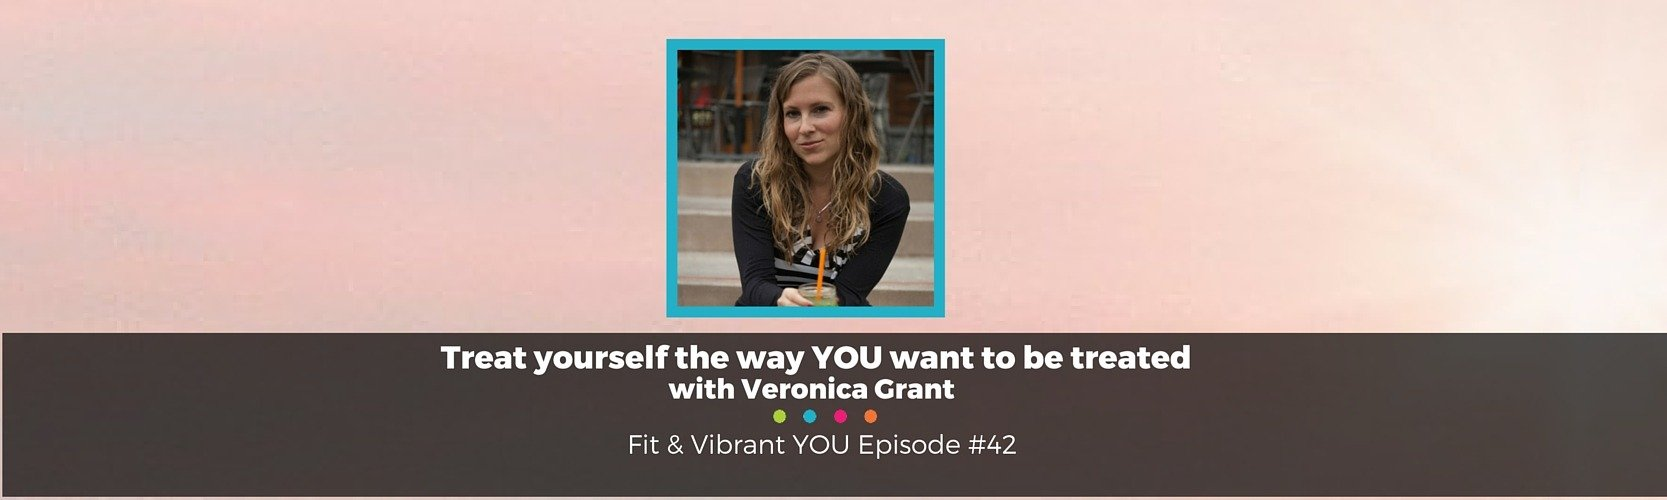 FVY 42: Treat yourself the way YOU want to be treated with Veronica Grant